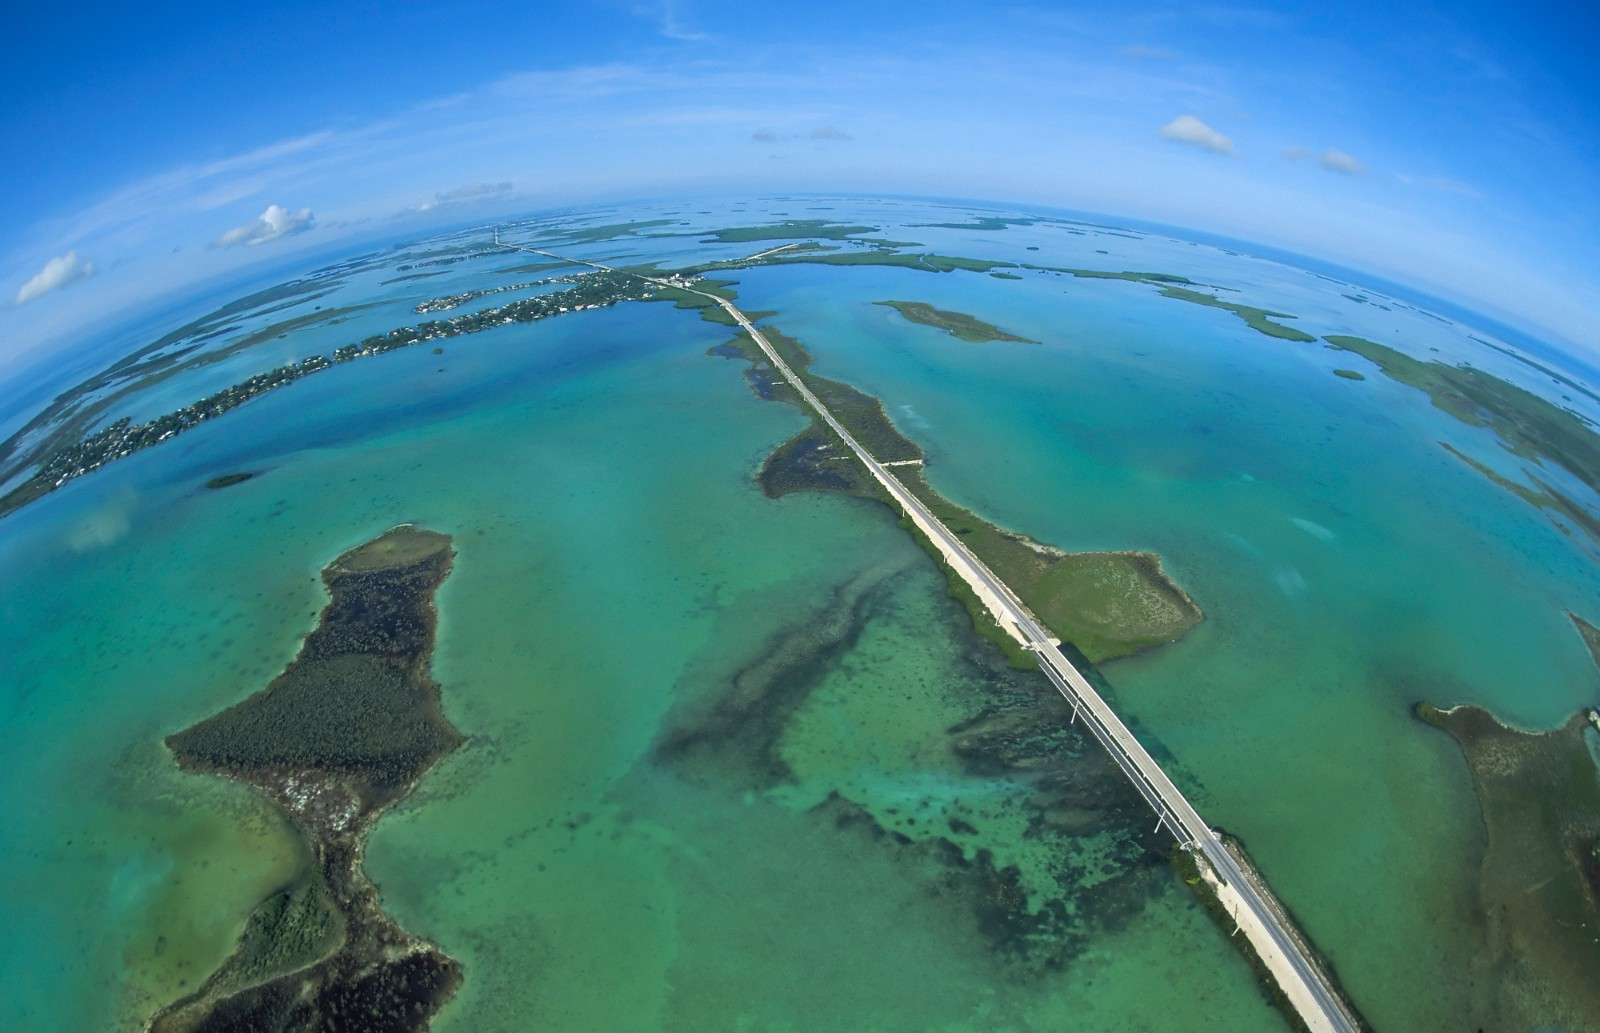 Overseas Highway 10 (Lower Keys Aerial - High Res) Credit Andy Newman